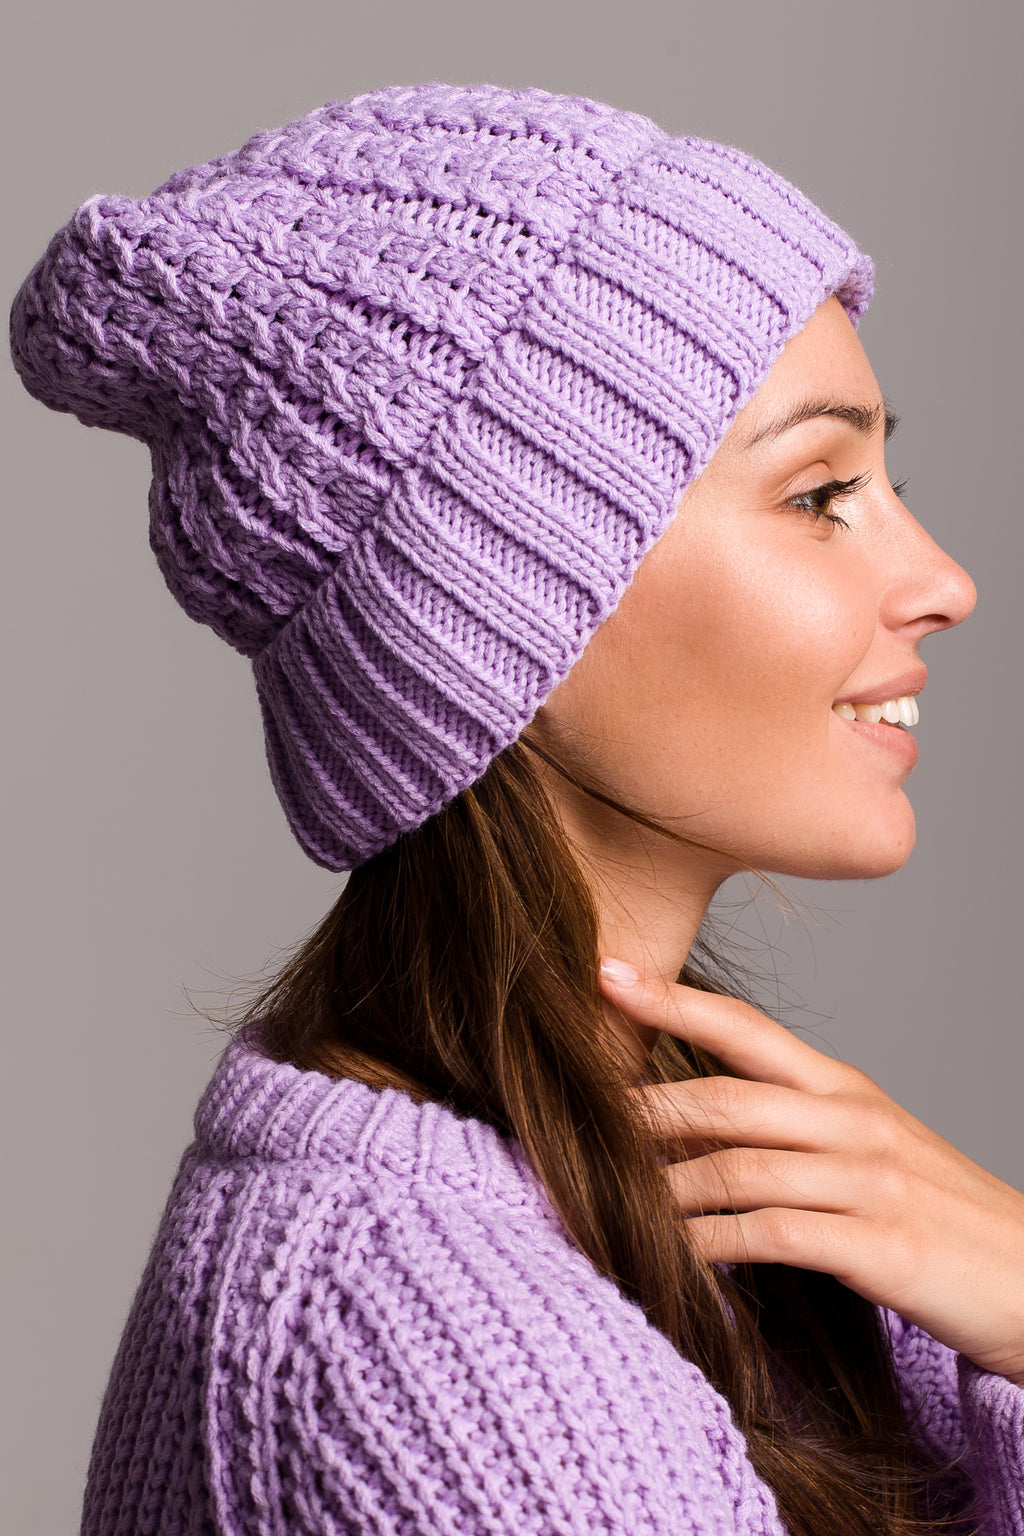 Lilac Cable Knit Beanie - So Chic Boutique